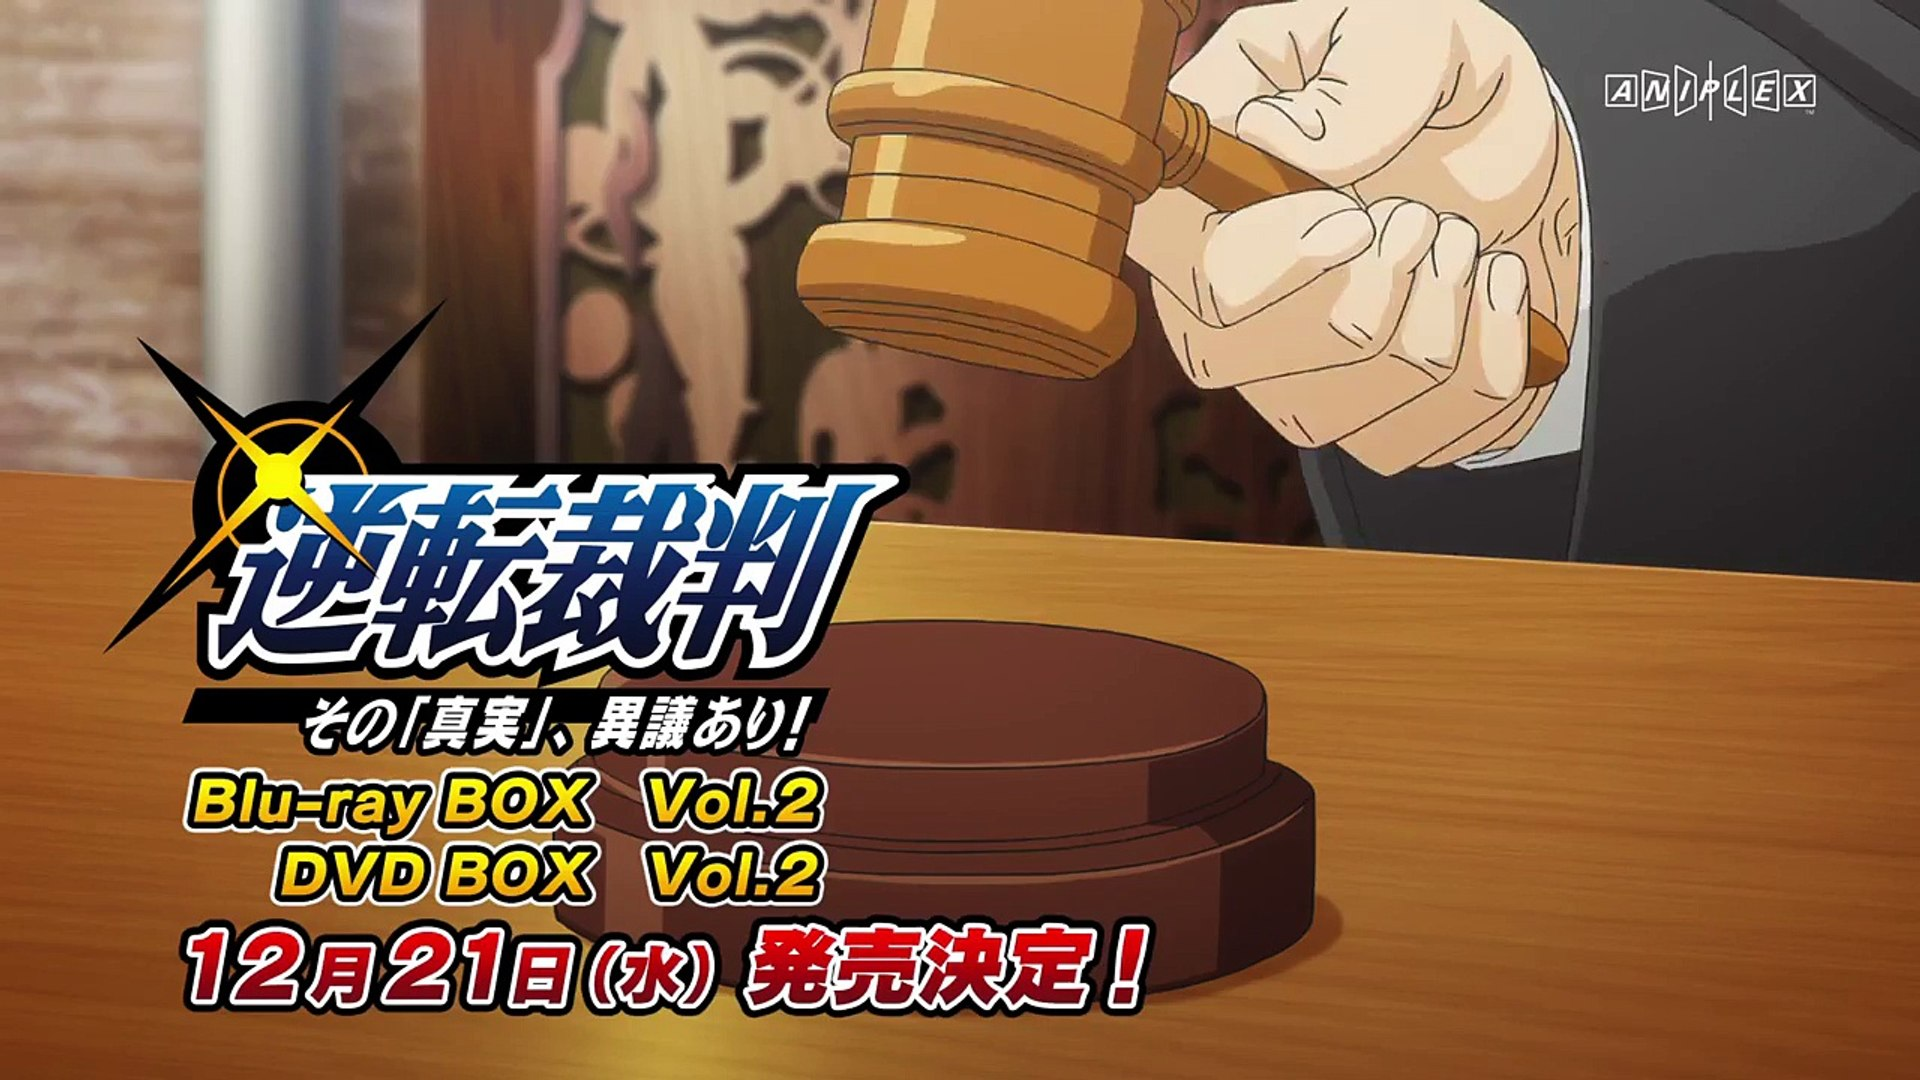 Ace Attorney anime - Blu-Ray/DVD Box Set 2 - TV Commercial